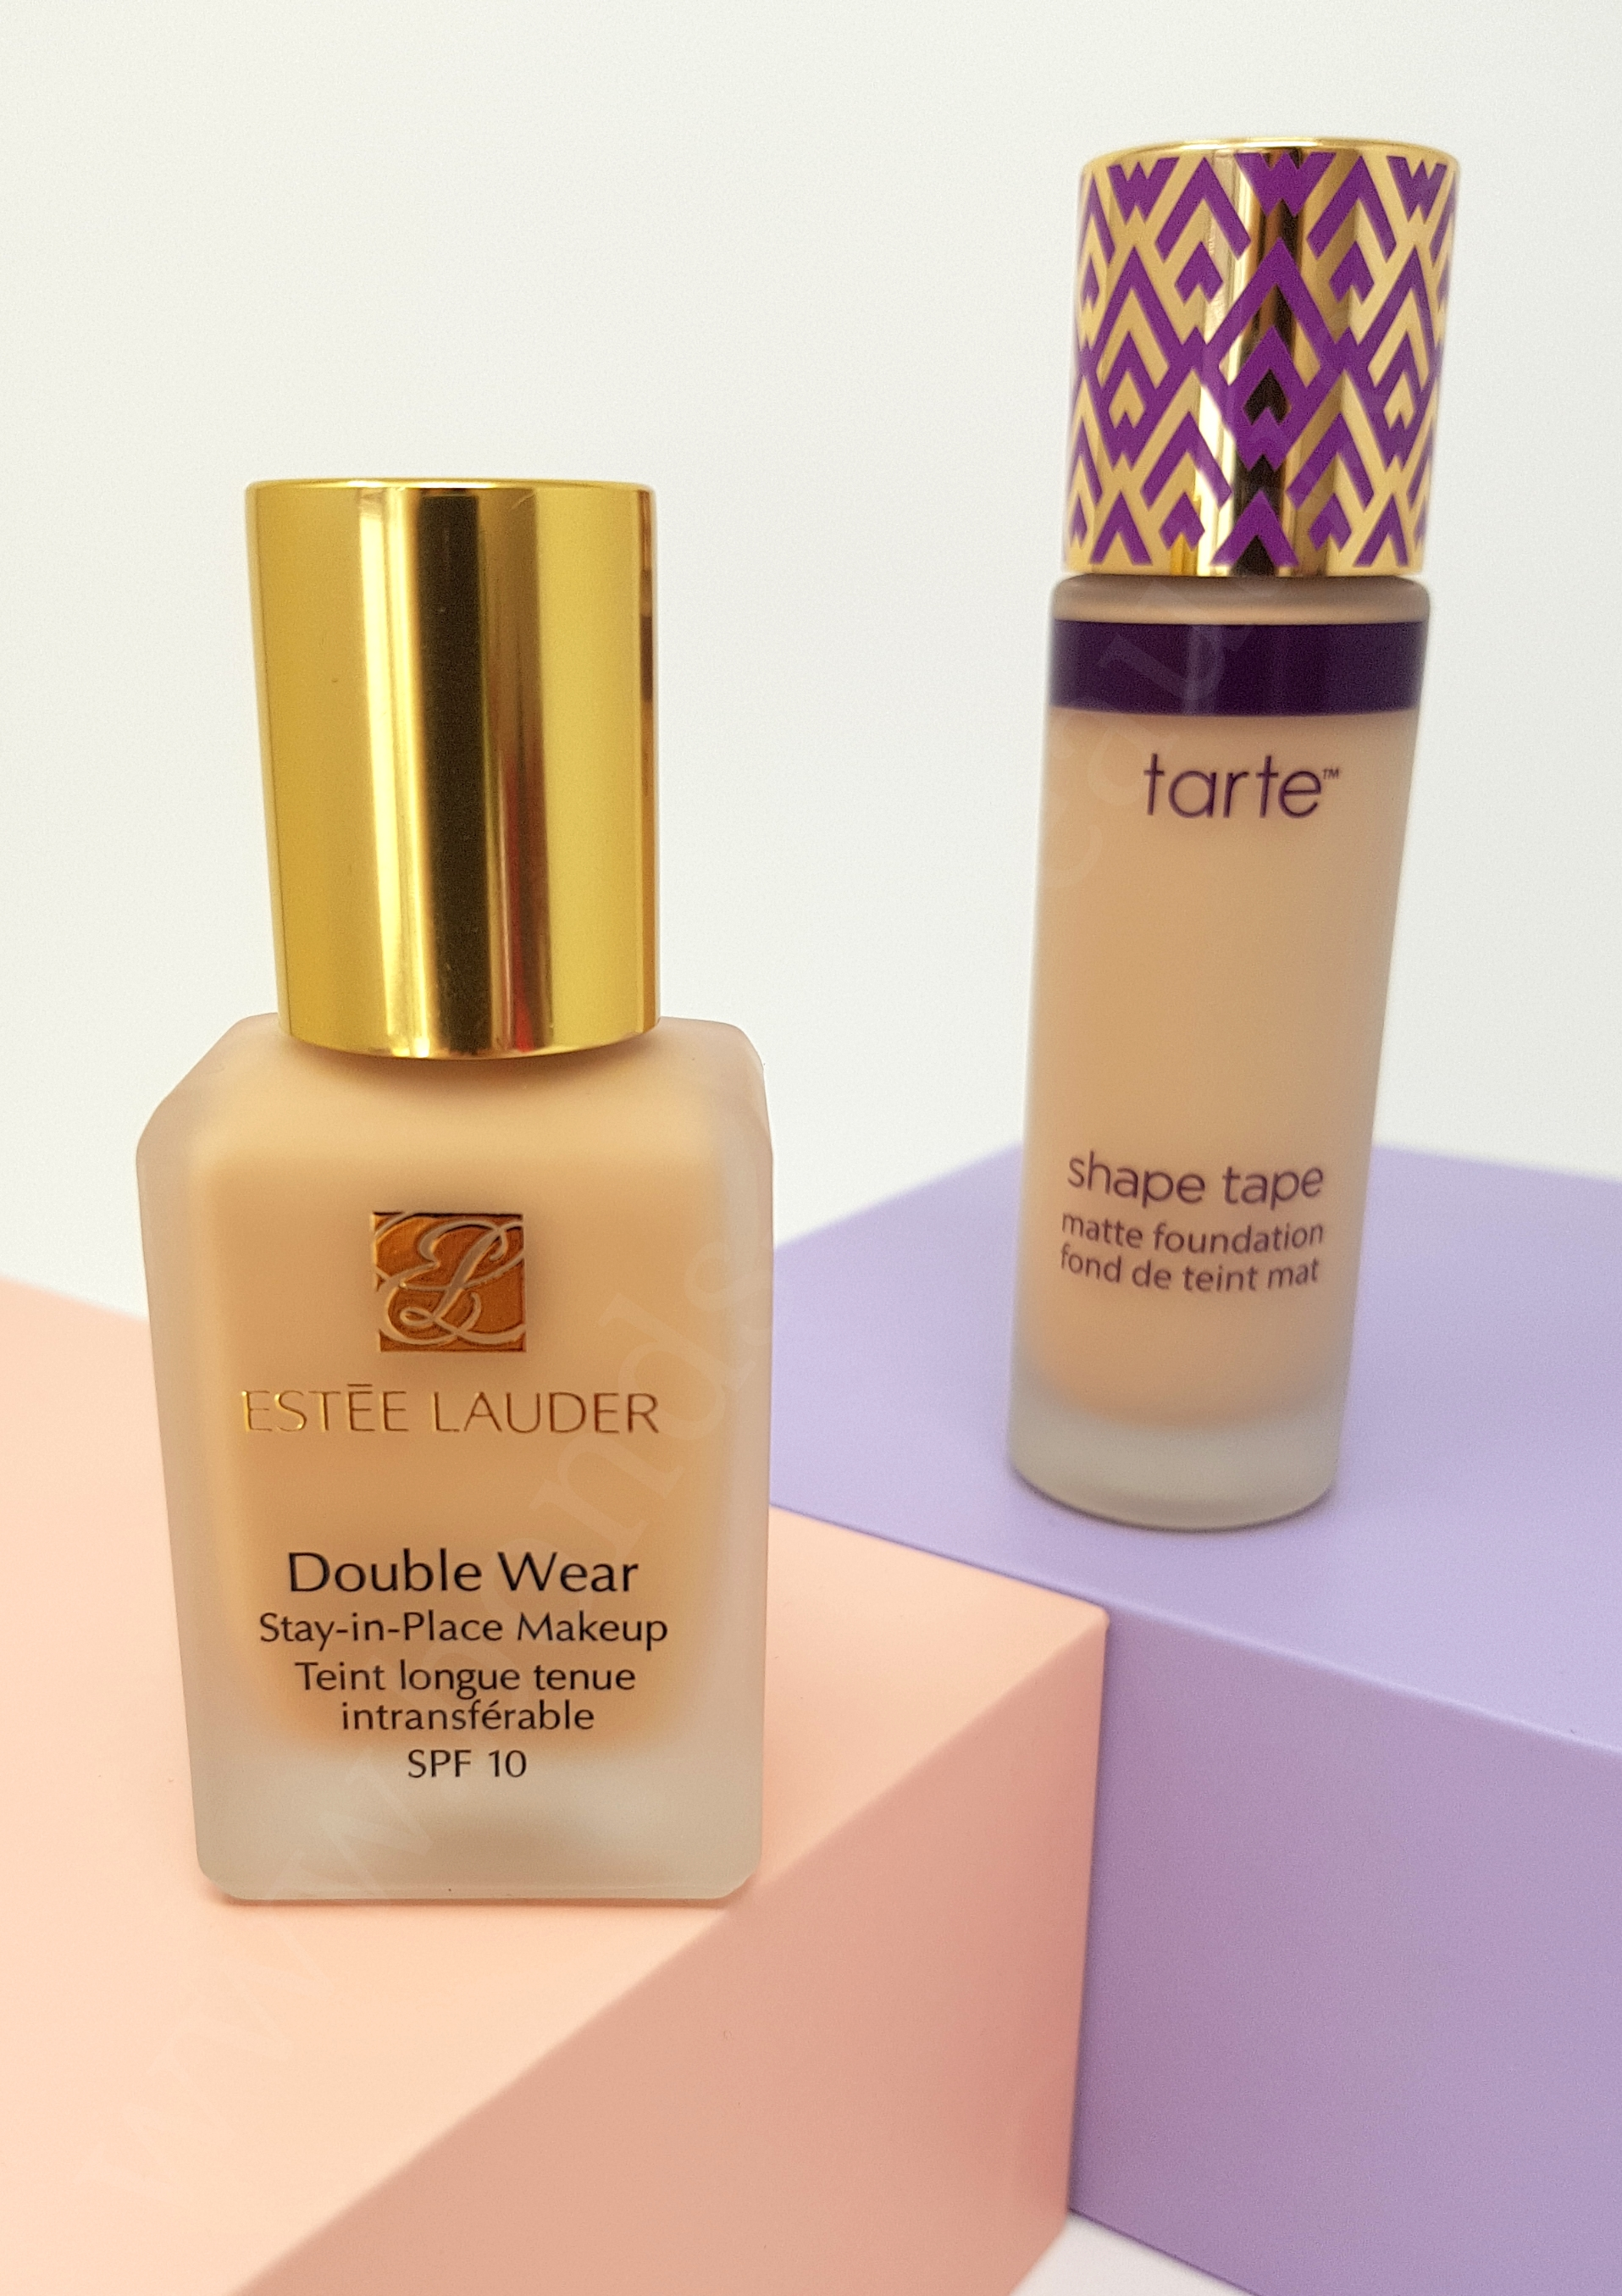 Battle Of The Foundations Estee Lauder Double Wear Vs Tarte Shape Tape Matte Foundation In Depth Reviews And Ingredient Analyses Bonds Of Beauty